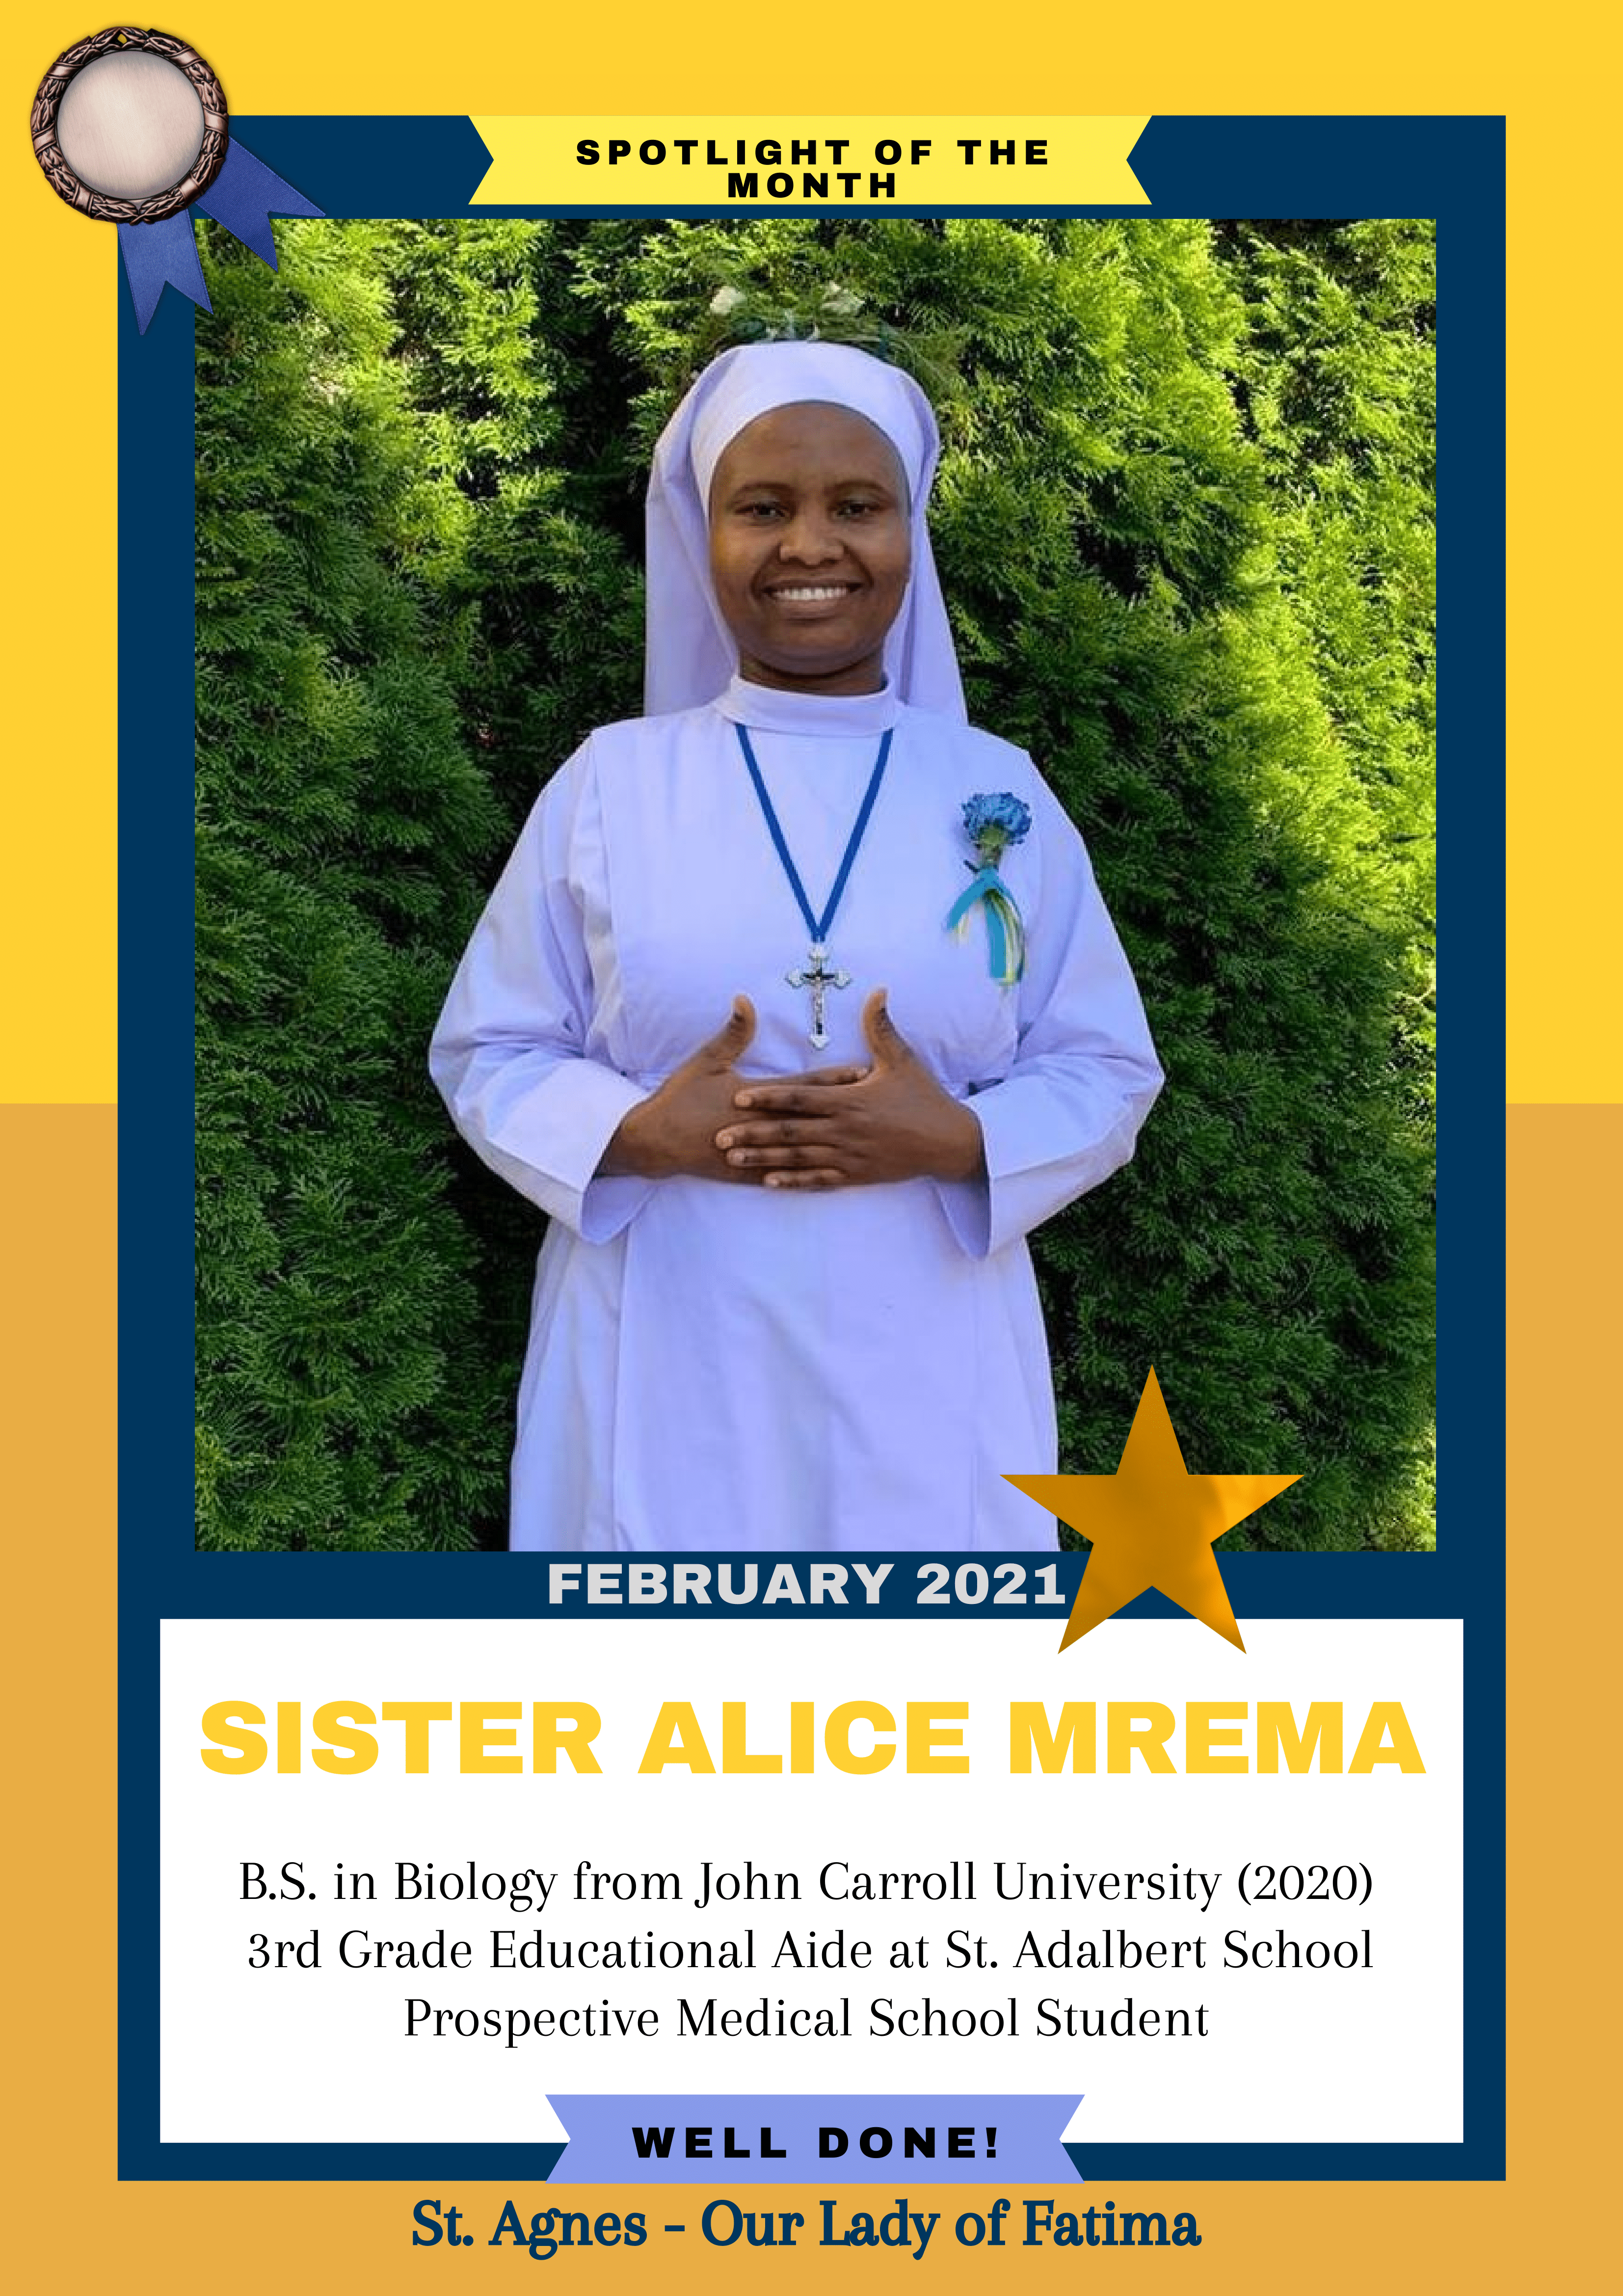 Photo of St. Agnes Our Lady of Fatima Church's Spotlight of The Month for January 2021: Dr. Myrita Wilhite